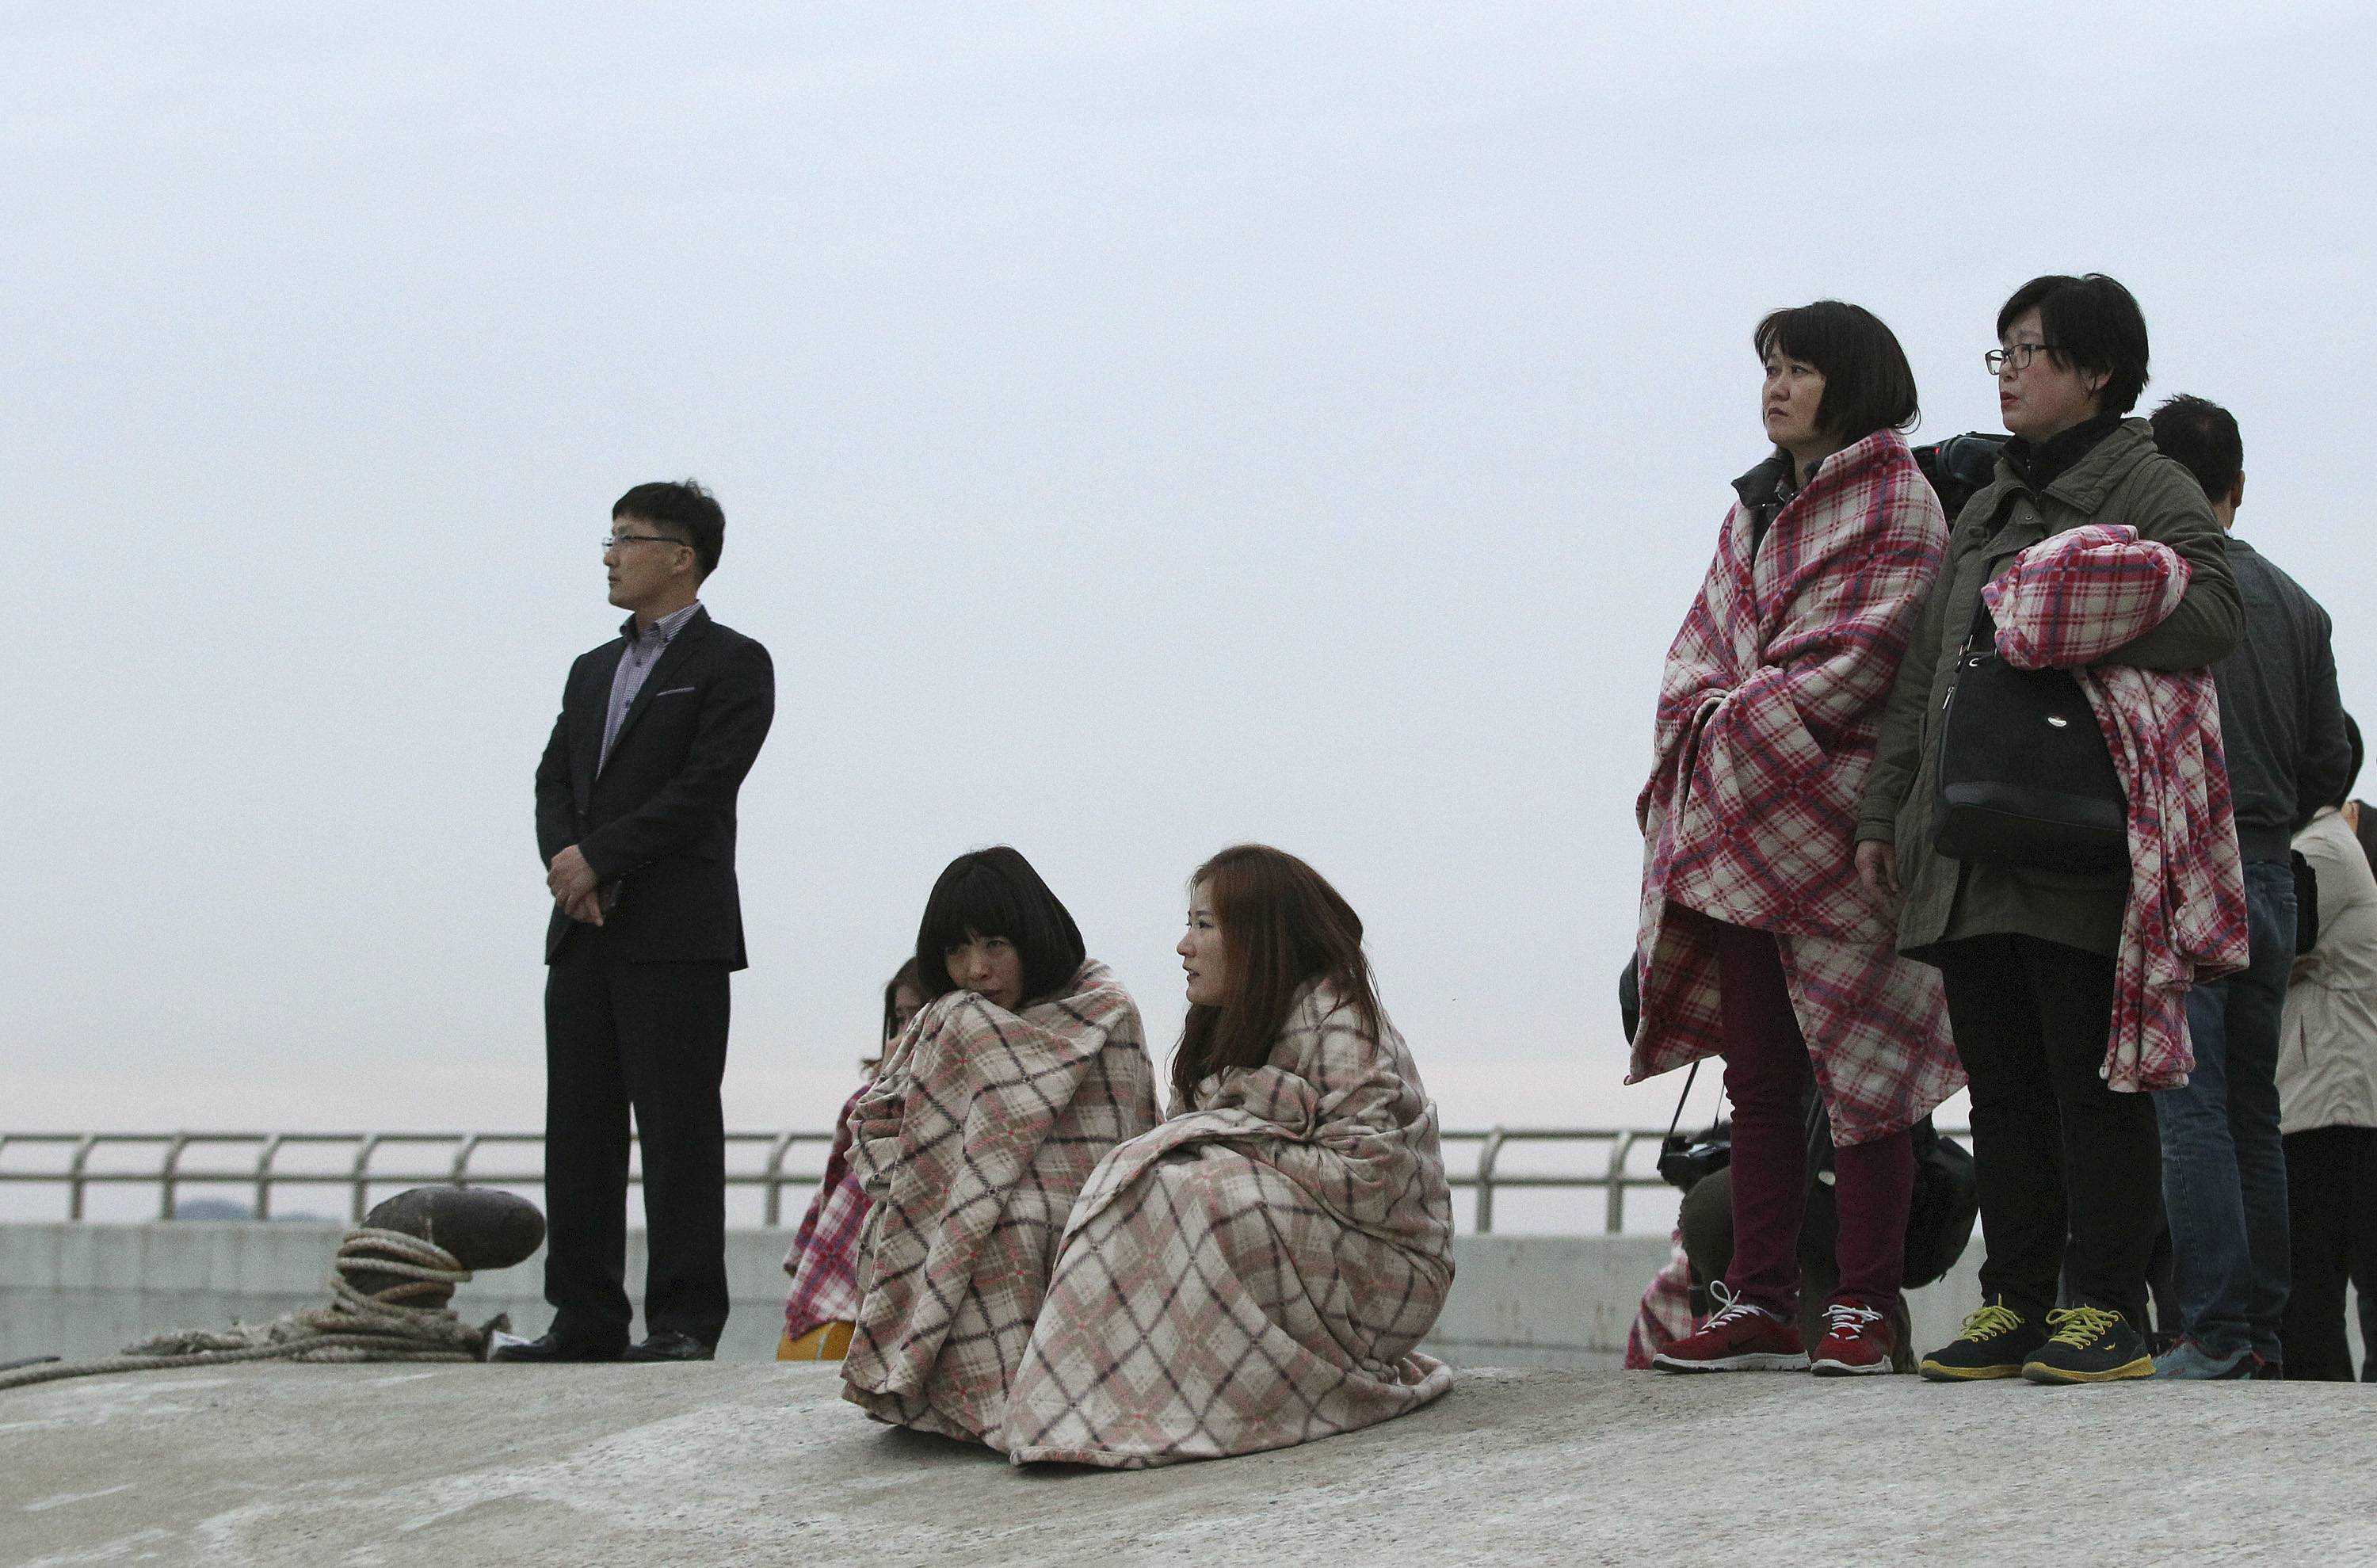 Relatives wait Wednesday for their missing loved ones at a port in Jindo, South Korea. A ferry carrying 475 people, mostly high school students on an overnight trip to a tourist island, sank off South Korea's southern coast on Wednesday, leaving nearly 300 people missing despite a frantic, hourslong rescue by dozens of ships and helicopters.